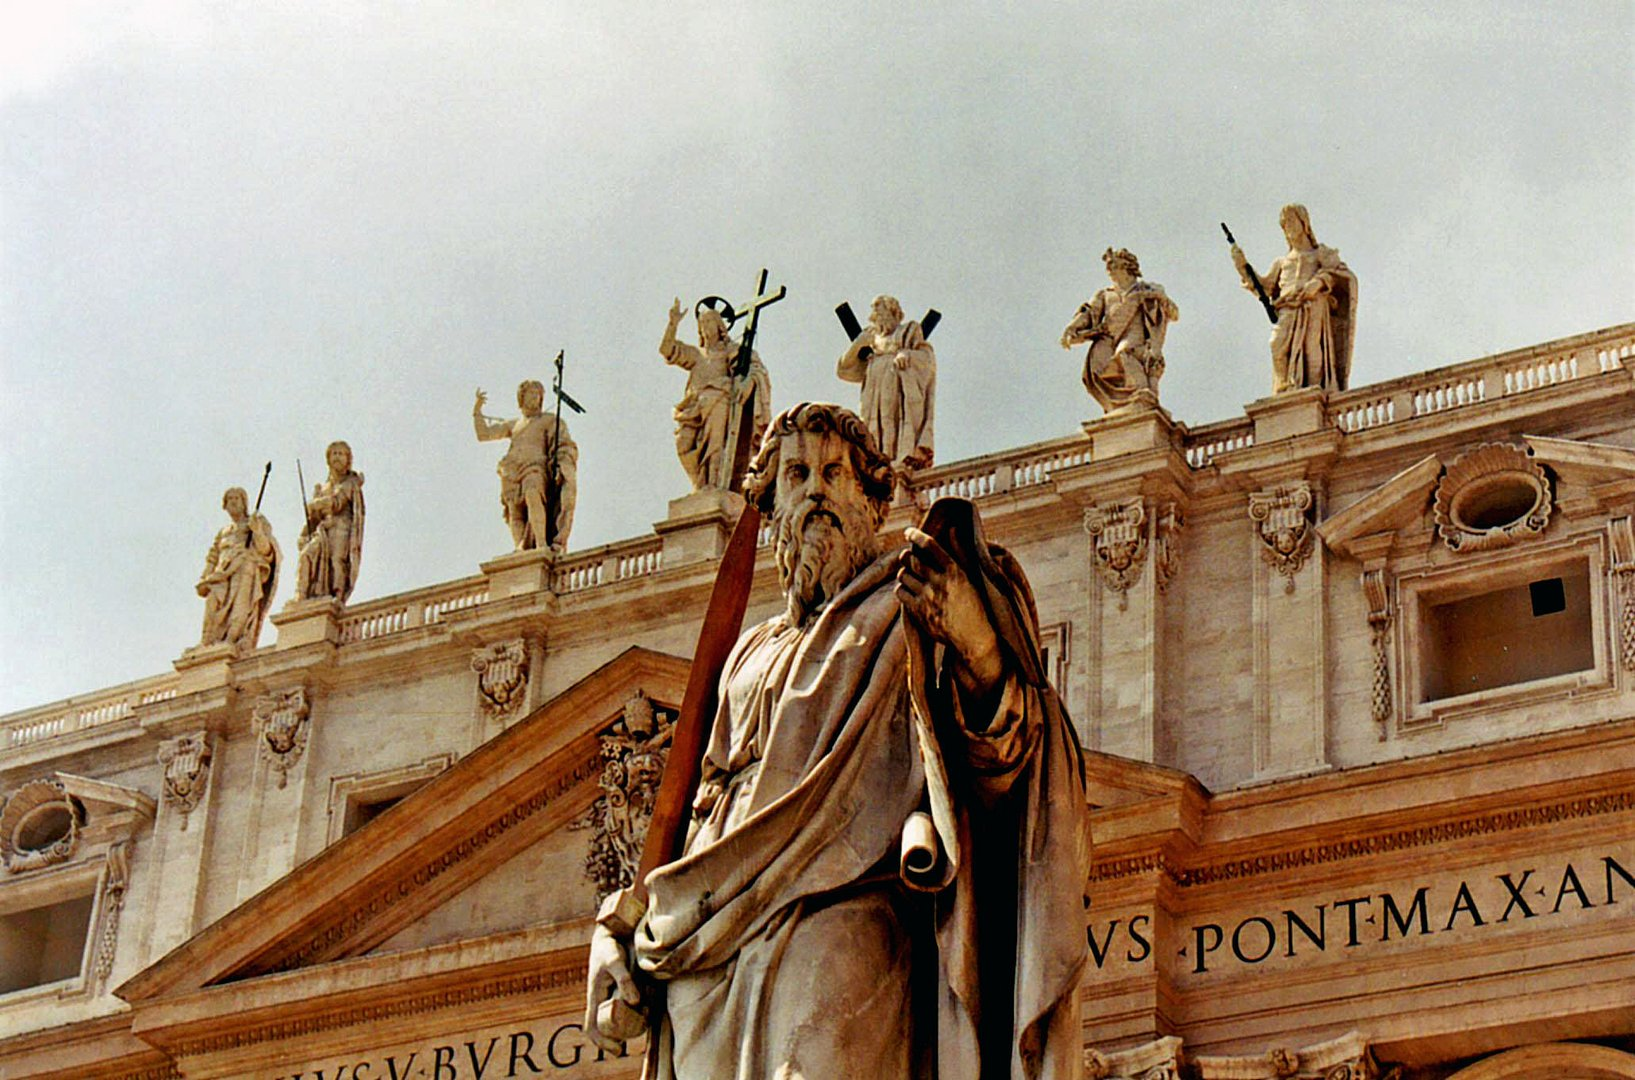 St. Paul at St. Peter's Square, Vatican City